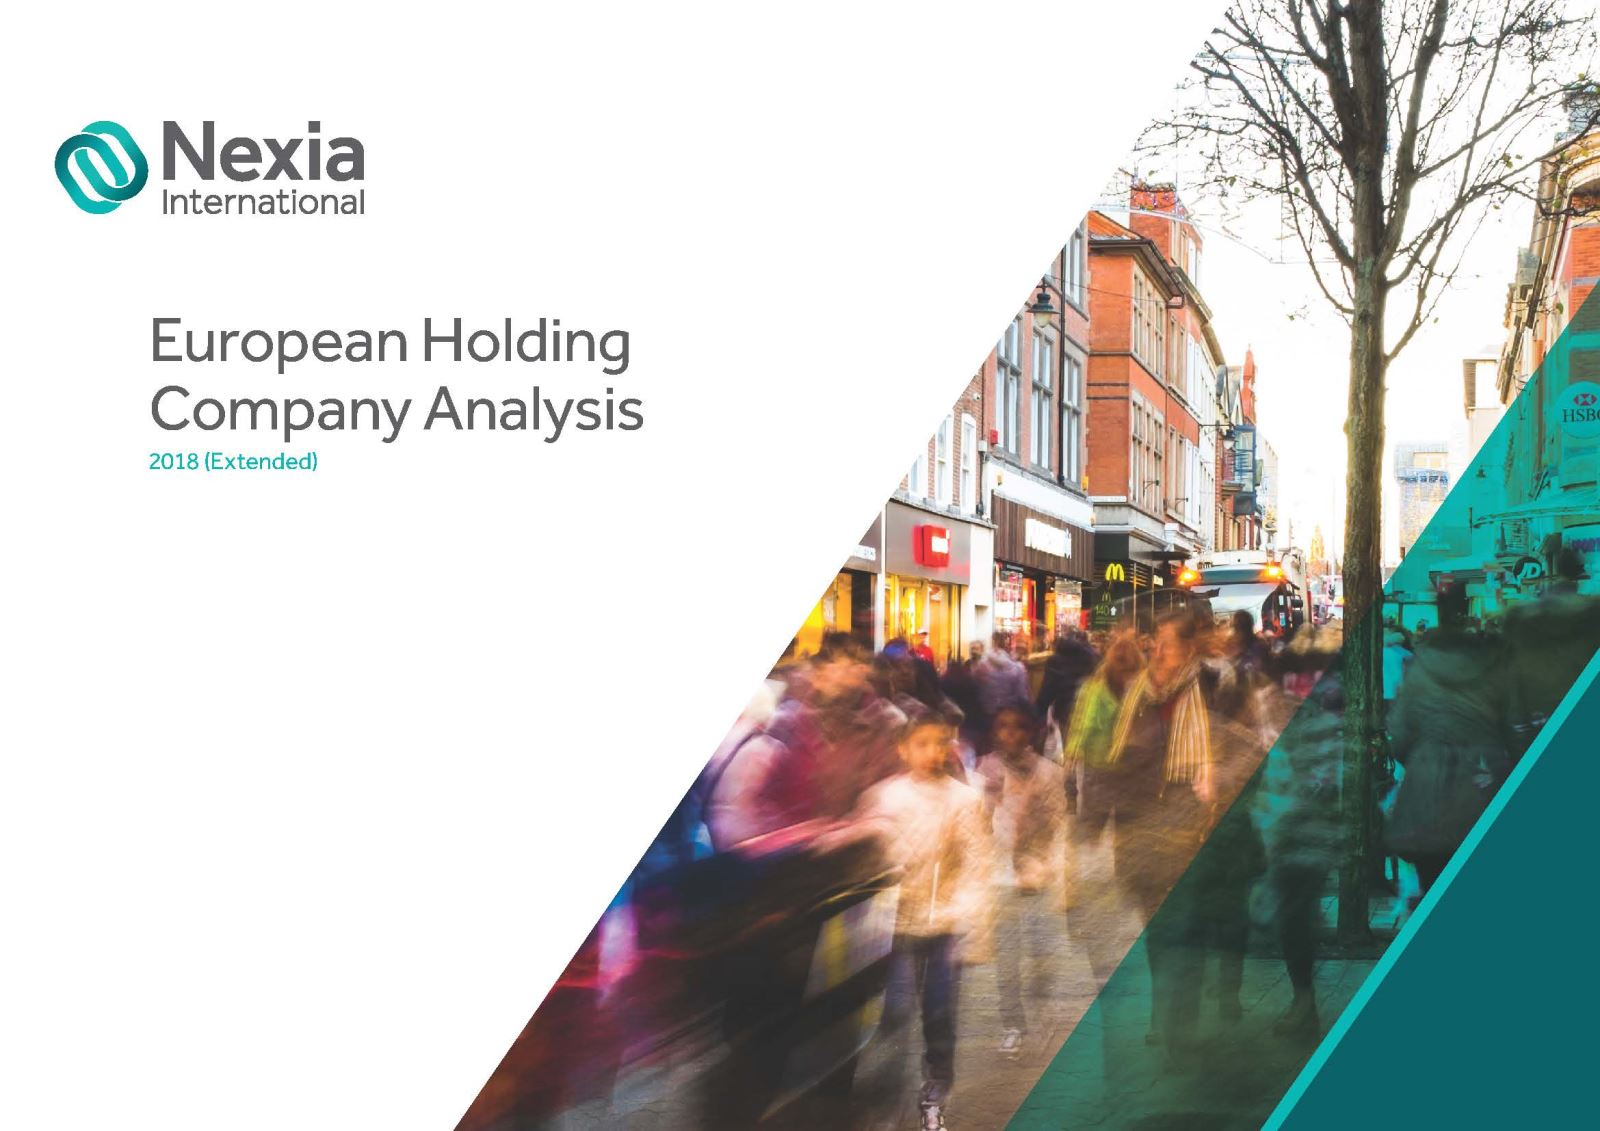 European Holding Company Analysis